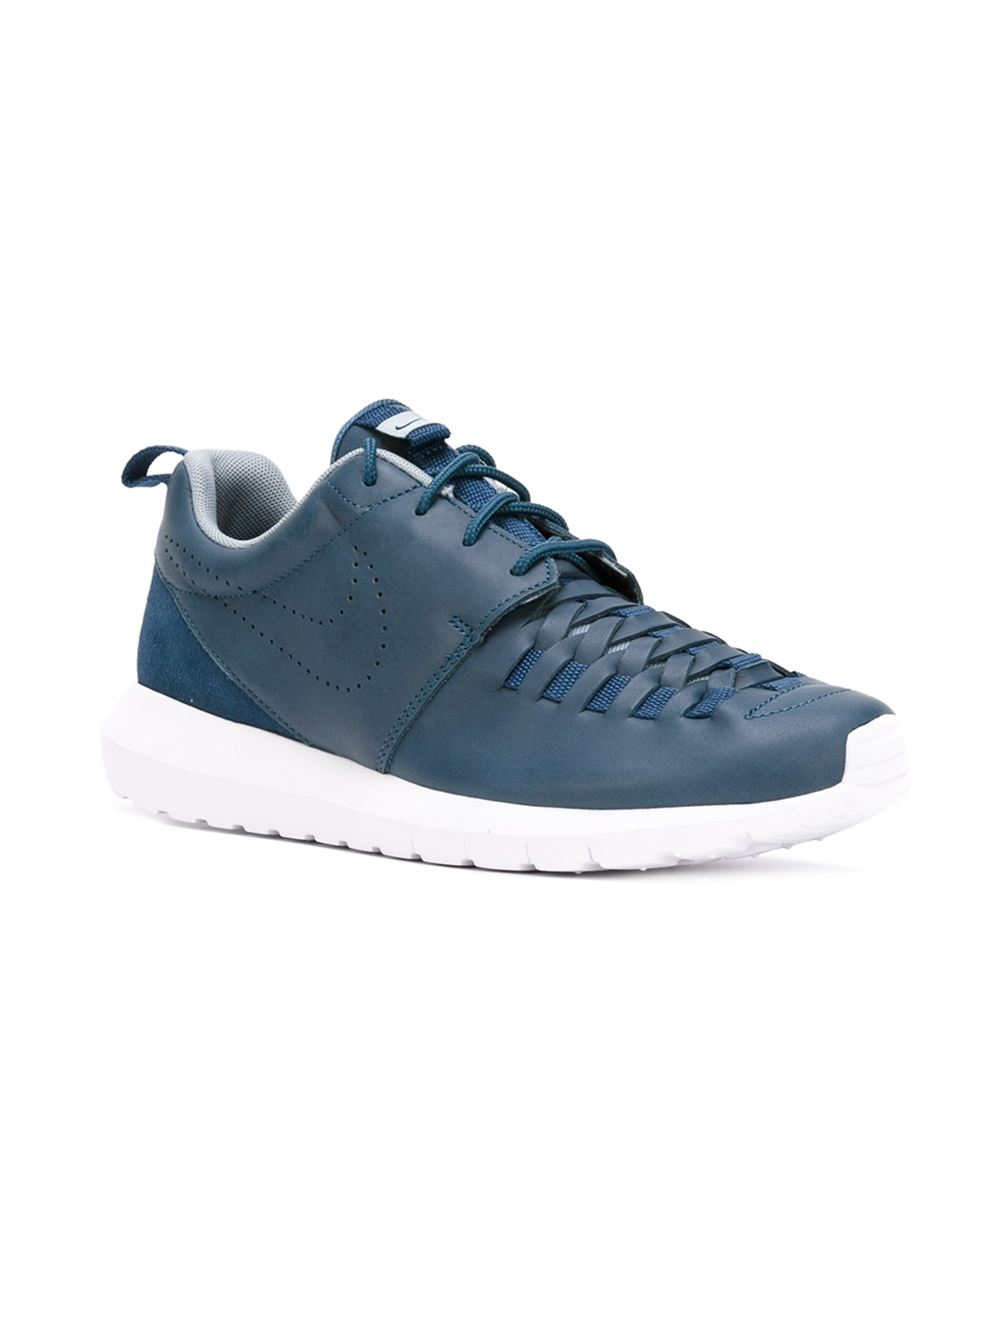 nike 39 roshe one nm 39 sneakers in blue for men lyst. Black Bedroom Furniture Sets. Home Design Ideas